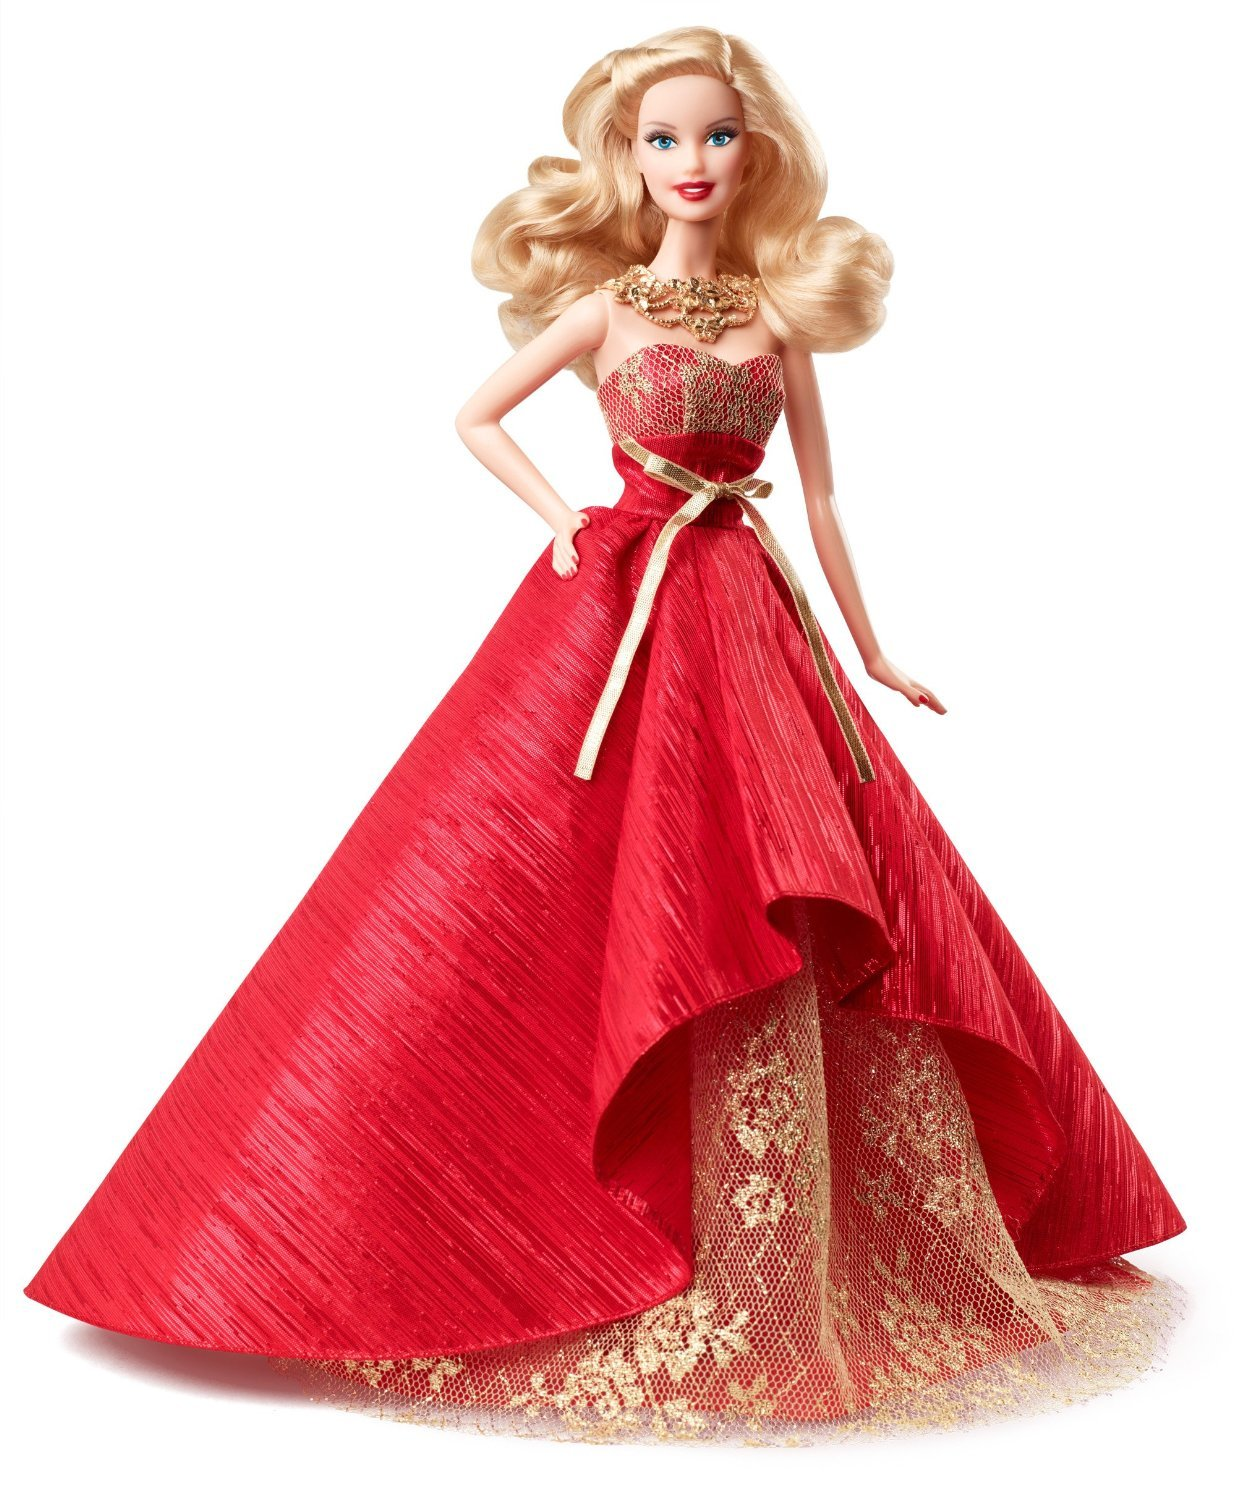 Holiday Barbie Doll 2014 in Posh Princess Red and Gold Satin Gown, Mattel